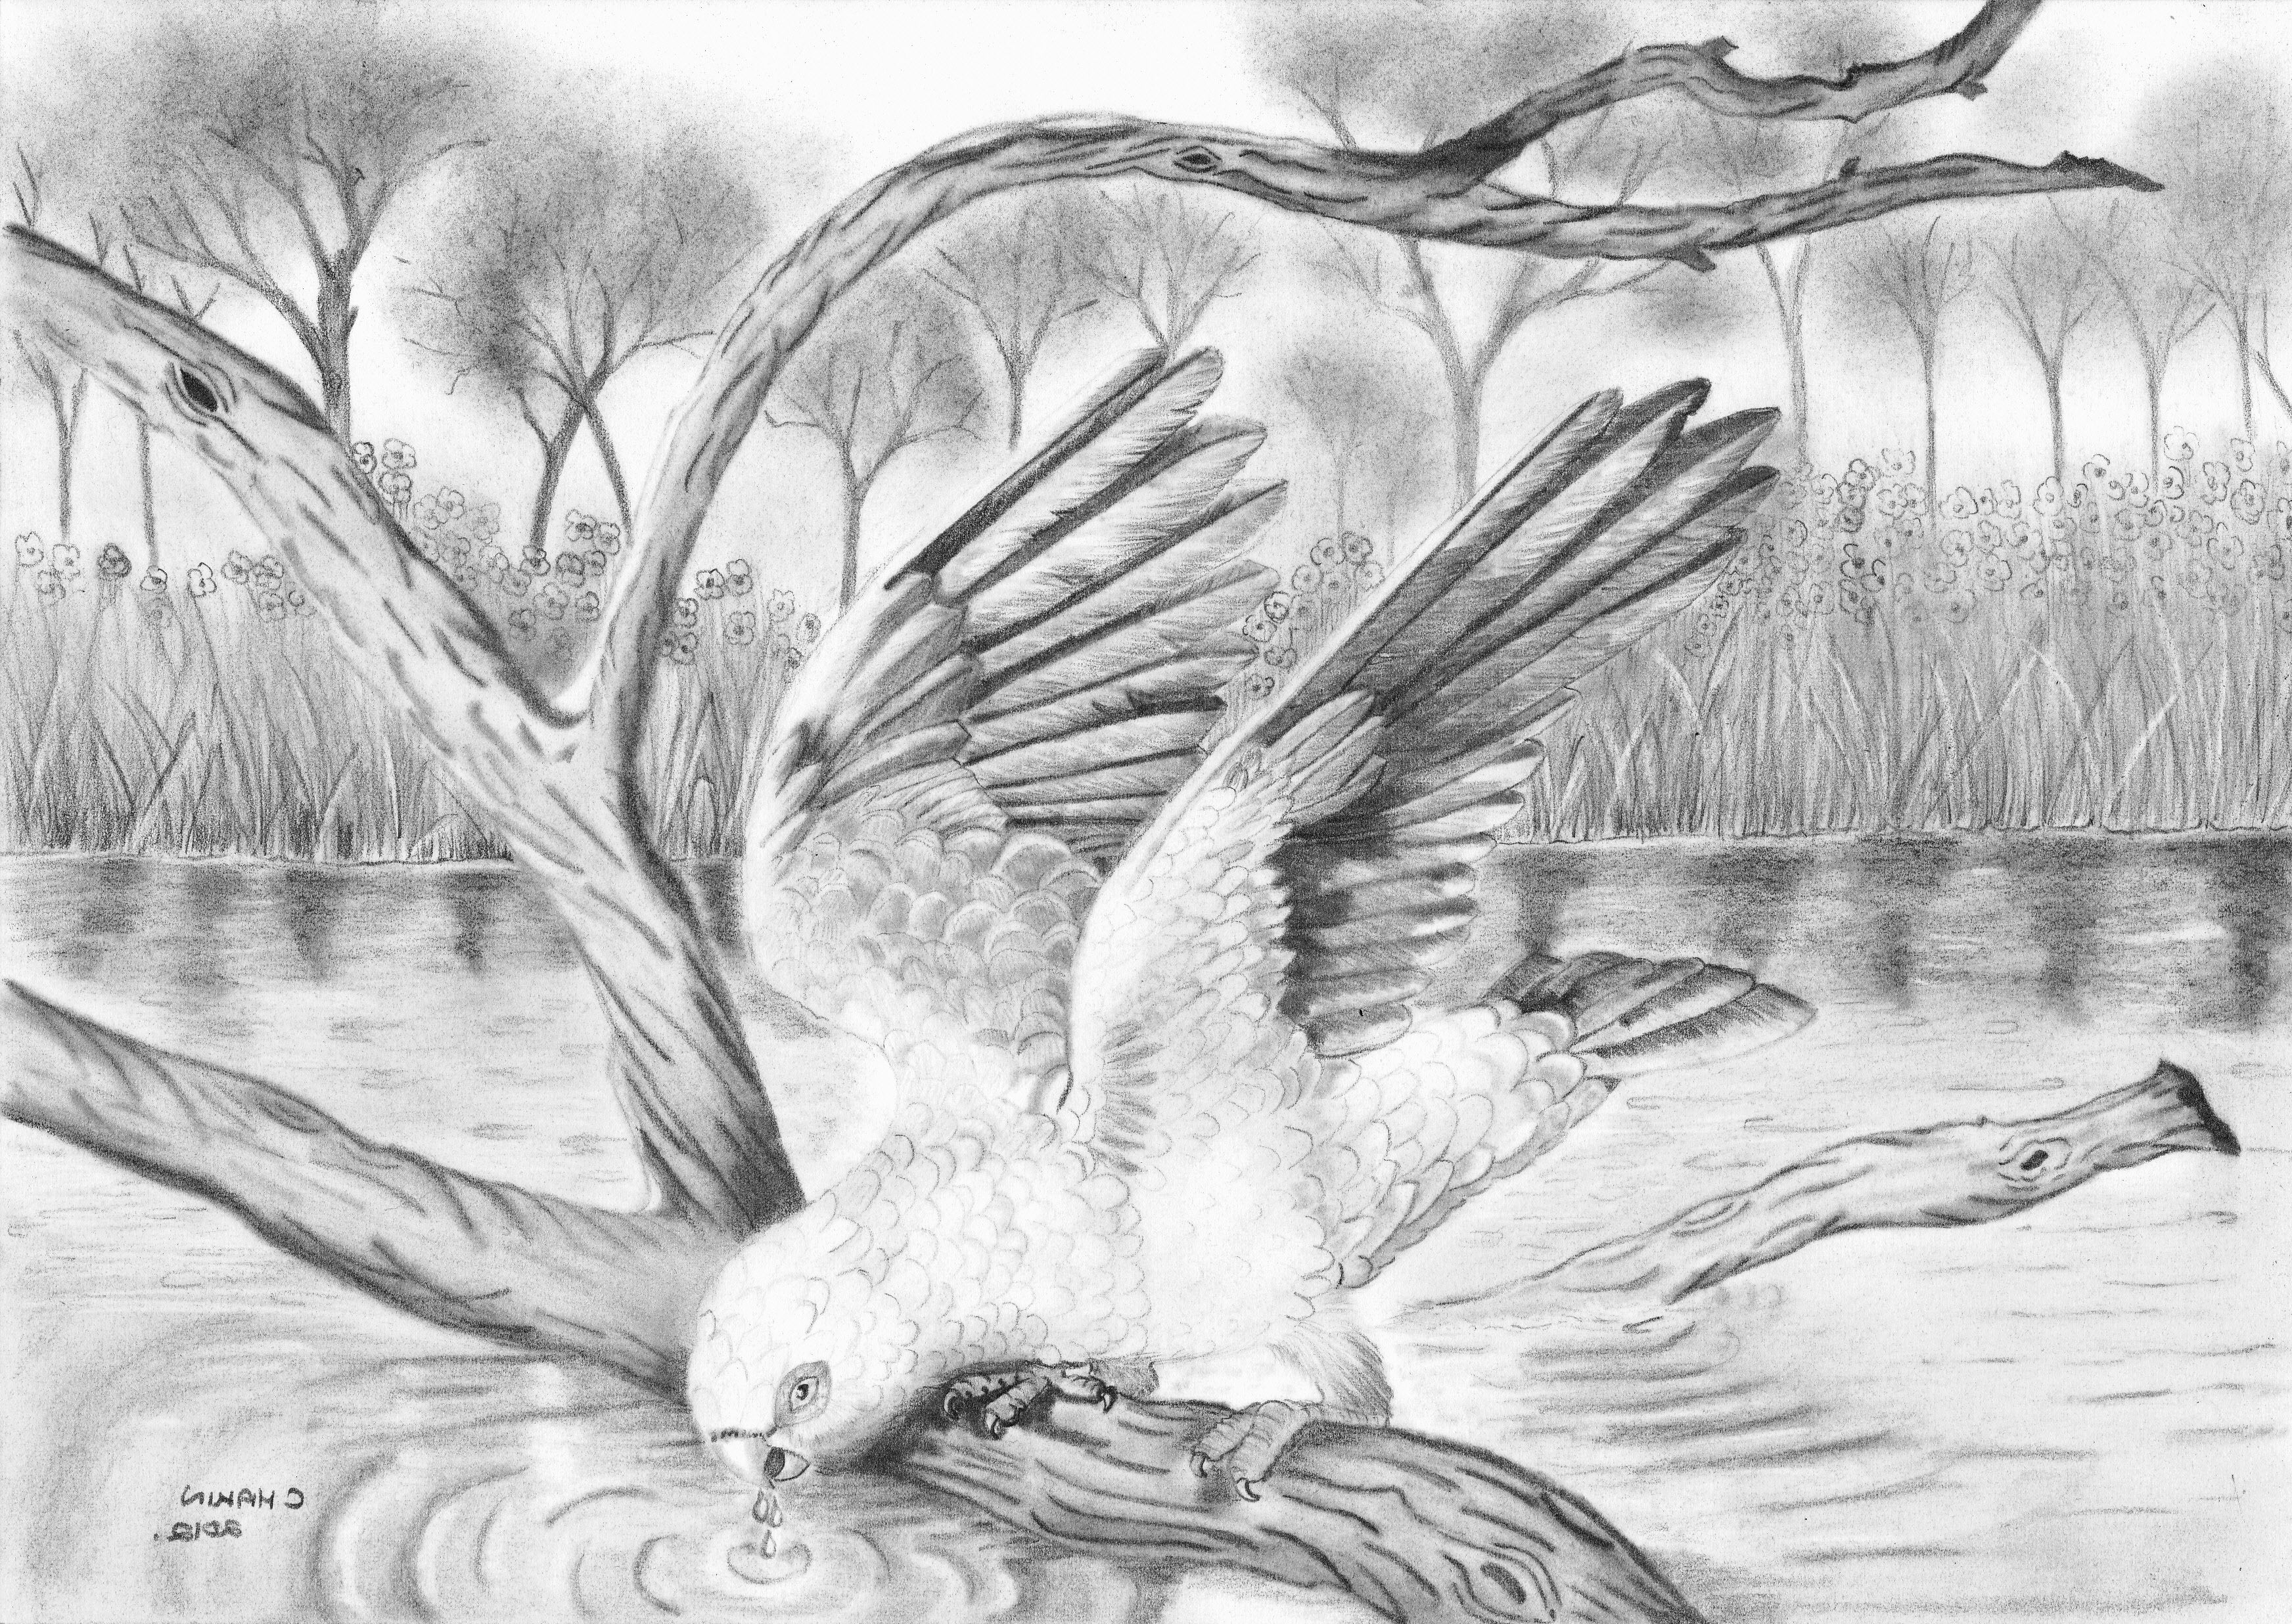 Best drawing ever of nature drawings of scenery google